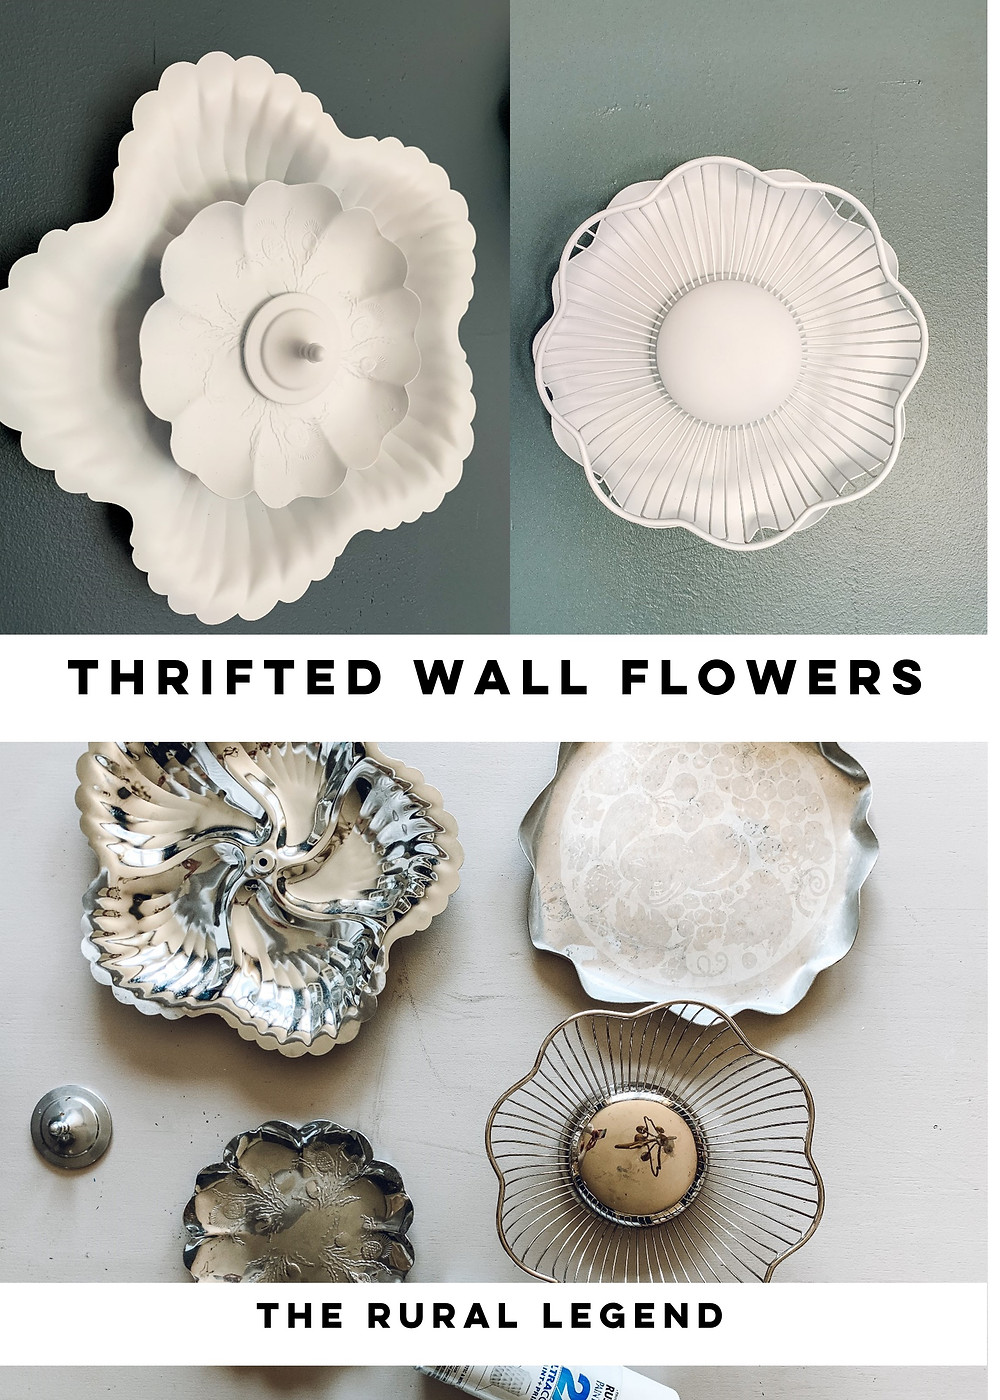 The rural legend, thrift store finds, thrifted diy, thrift store makeover, wall sculpture, diy wall sculpture, diy wall art, 3D wall art, wall flowers, hanging flowers, thrifted serve ware, diy home décor, diy blog, diy décor, dining room décor, children's room décor, diy ideas, budget friendly diy, new uses for old things, cheap diy, easy diy ideas, simple diy décor, white metal flowers, metal wall décor, #therurallegend, #rustoleum, #diyideas, #thrifteddecor, #newusesforoldthings